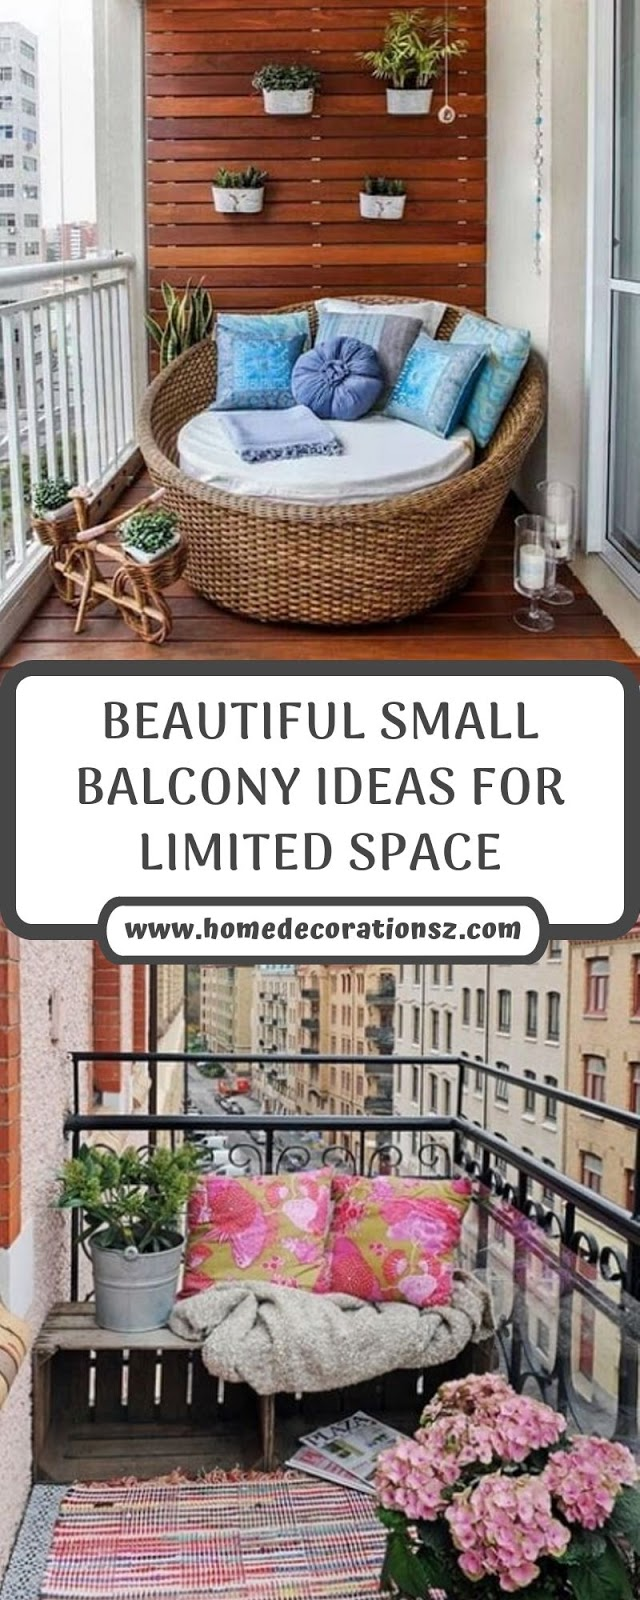 BEAUTIFUL SMALL BALCONY IDEAS FOR LIMITED SPACE